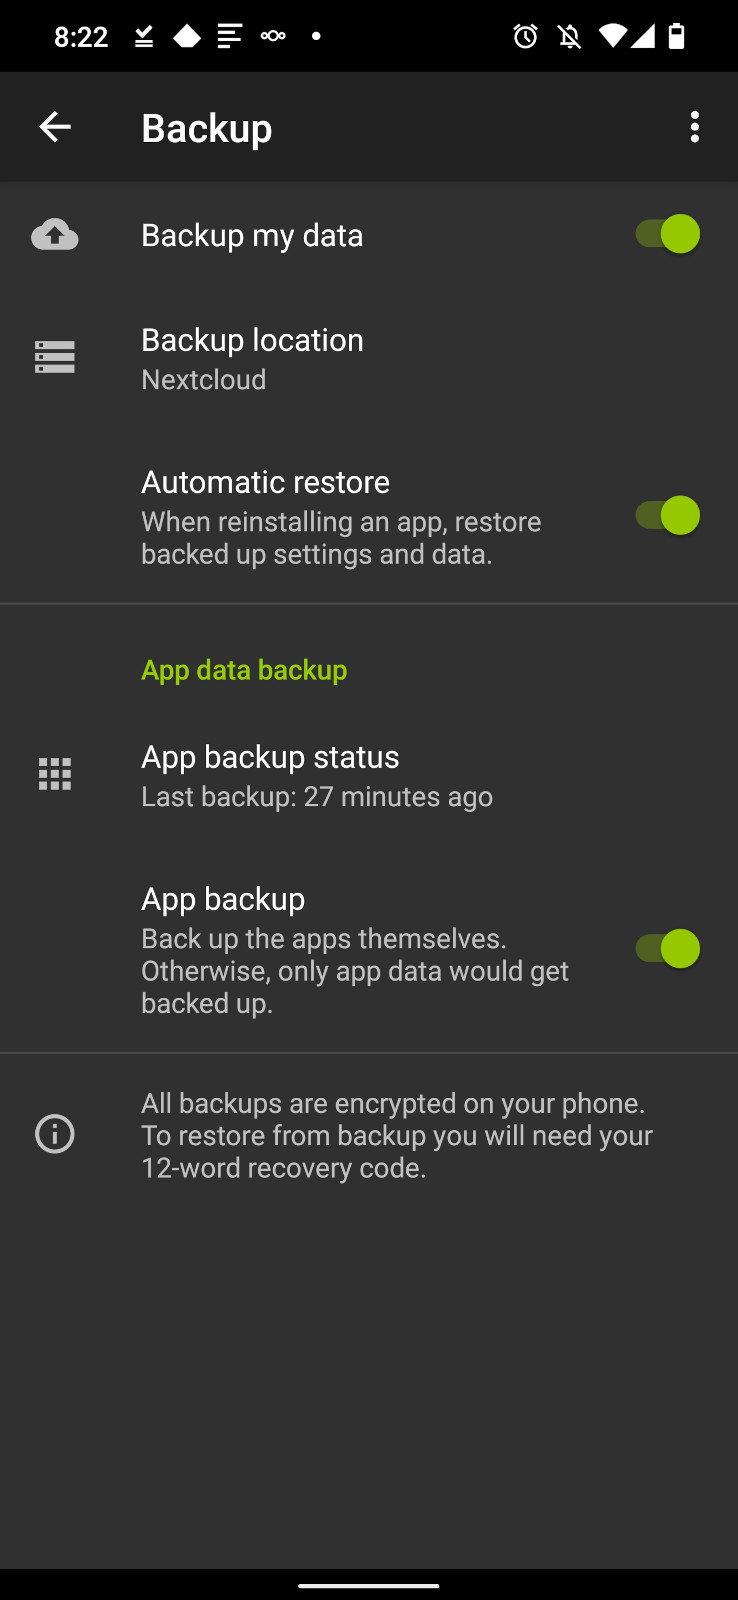 Screenshot of the Android Backup settings